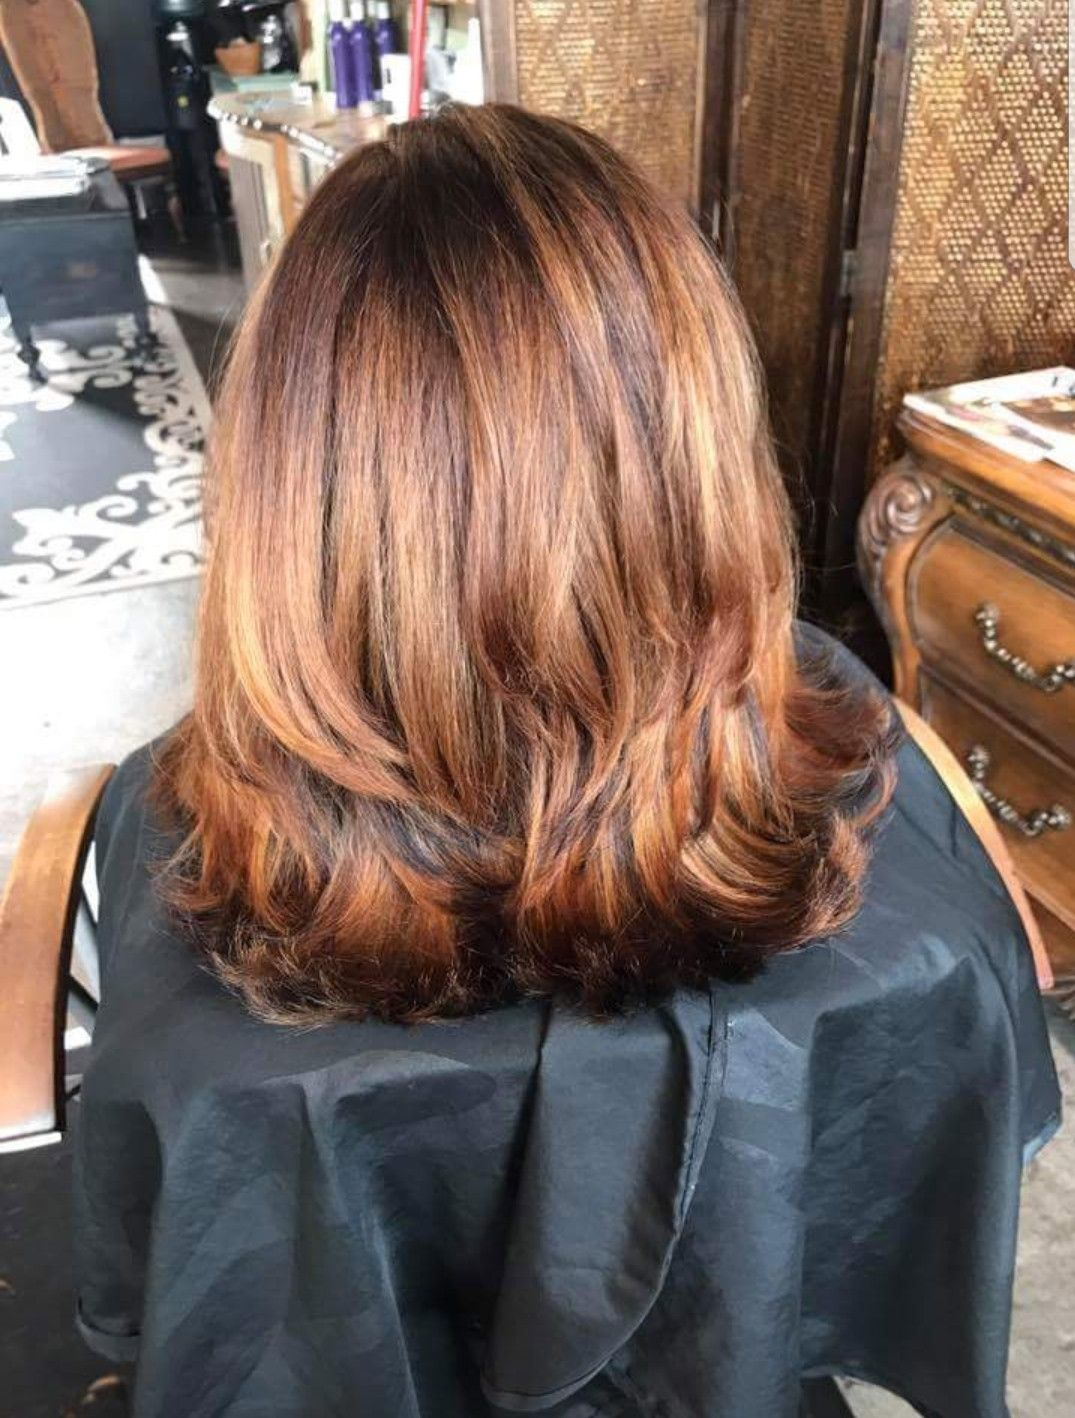 Love the richness and shimmer of this color caramel balayage on